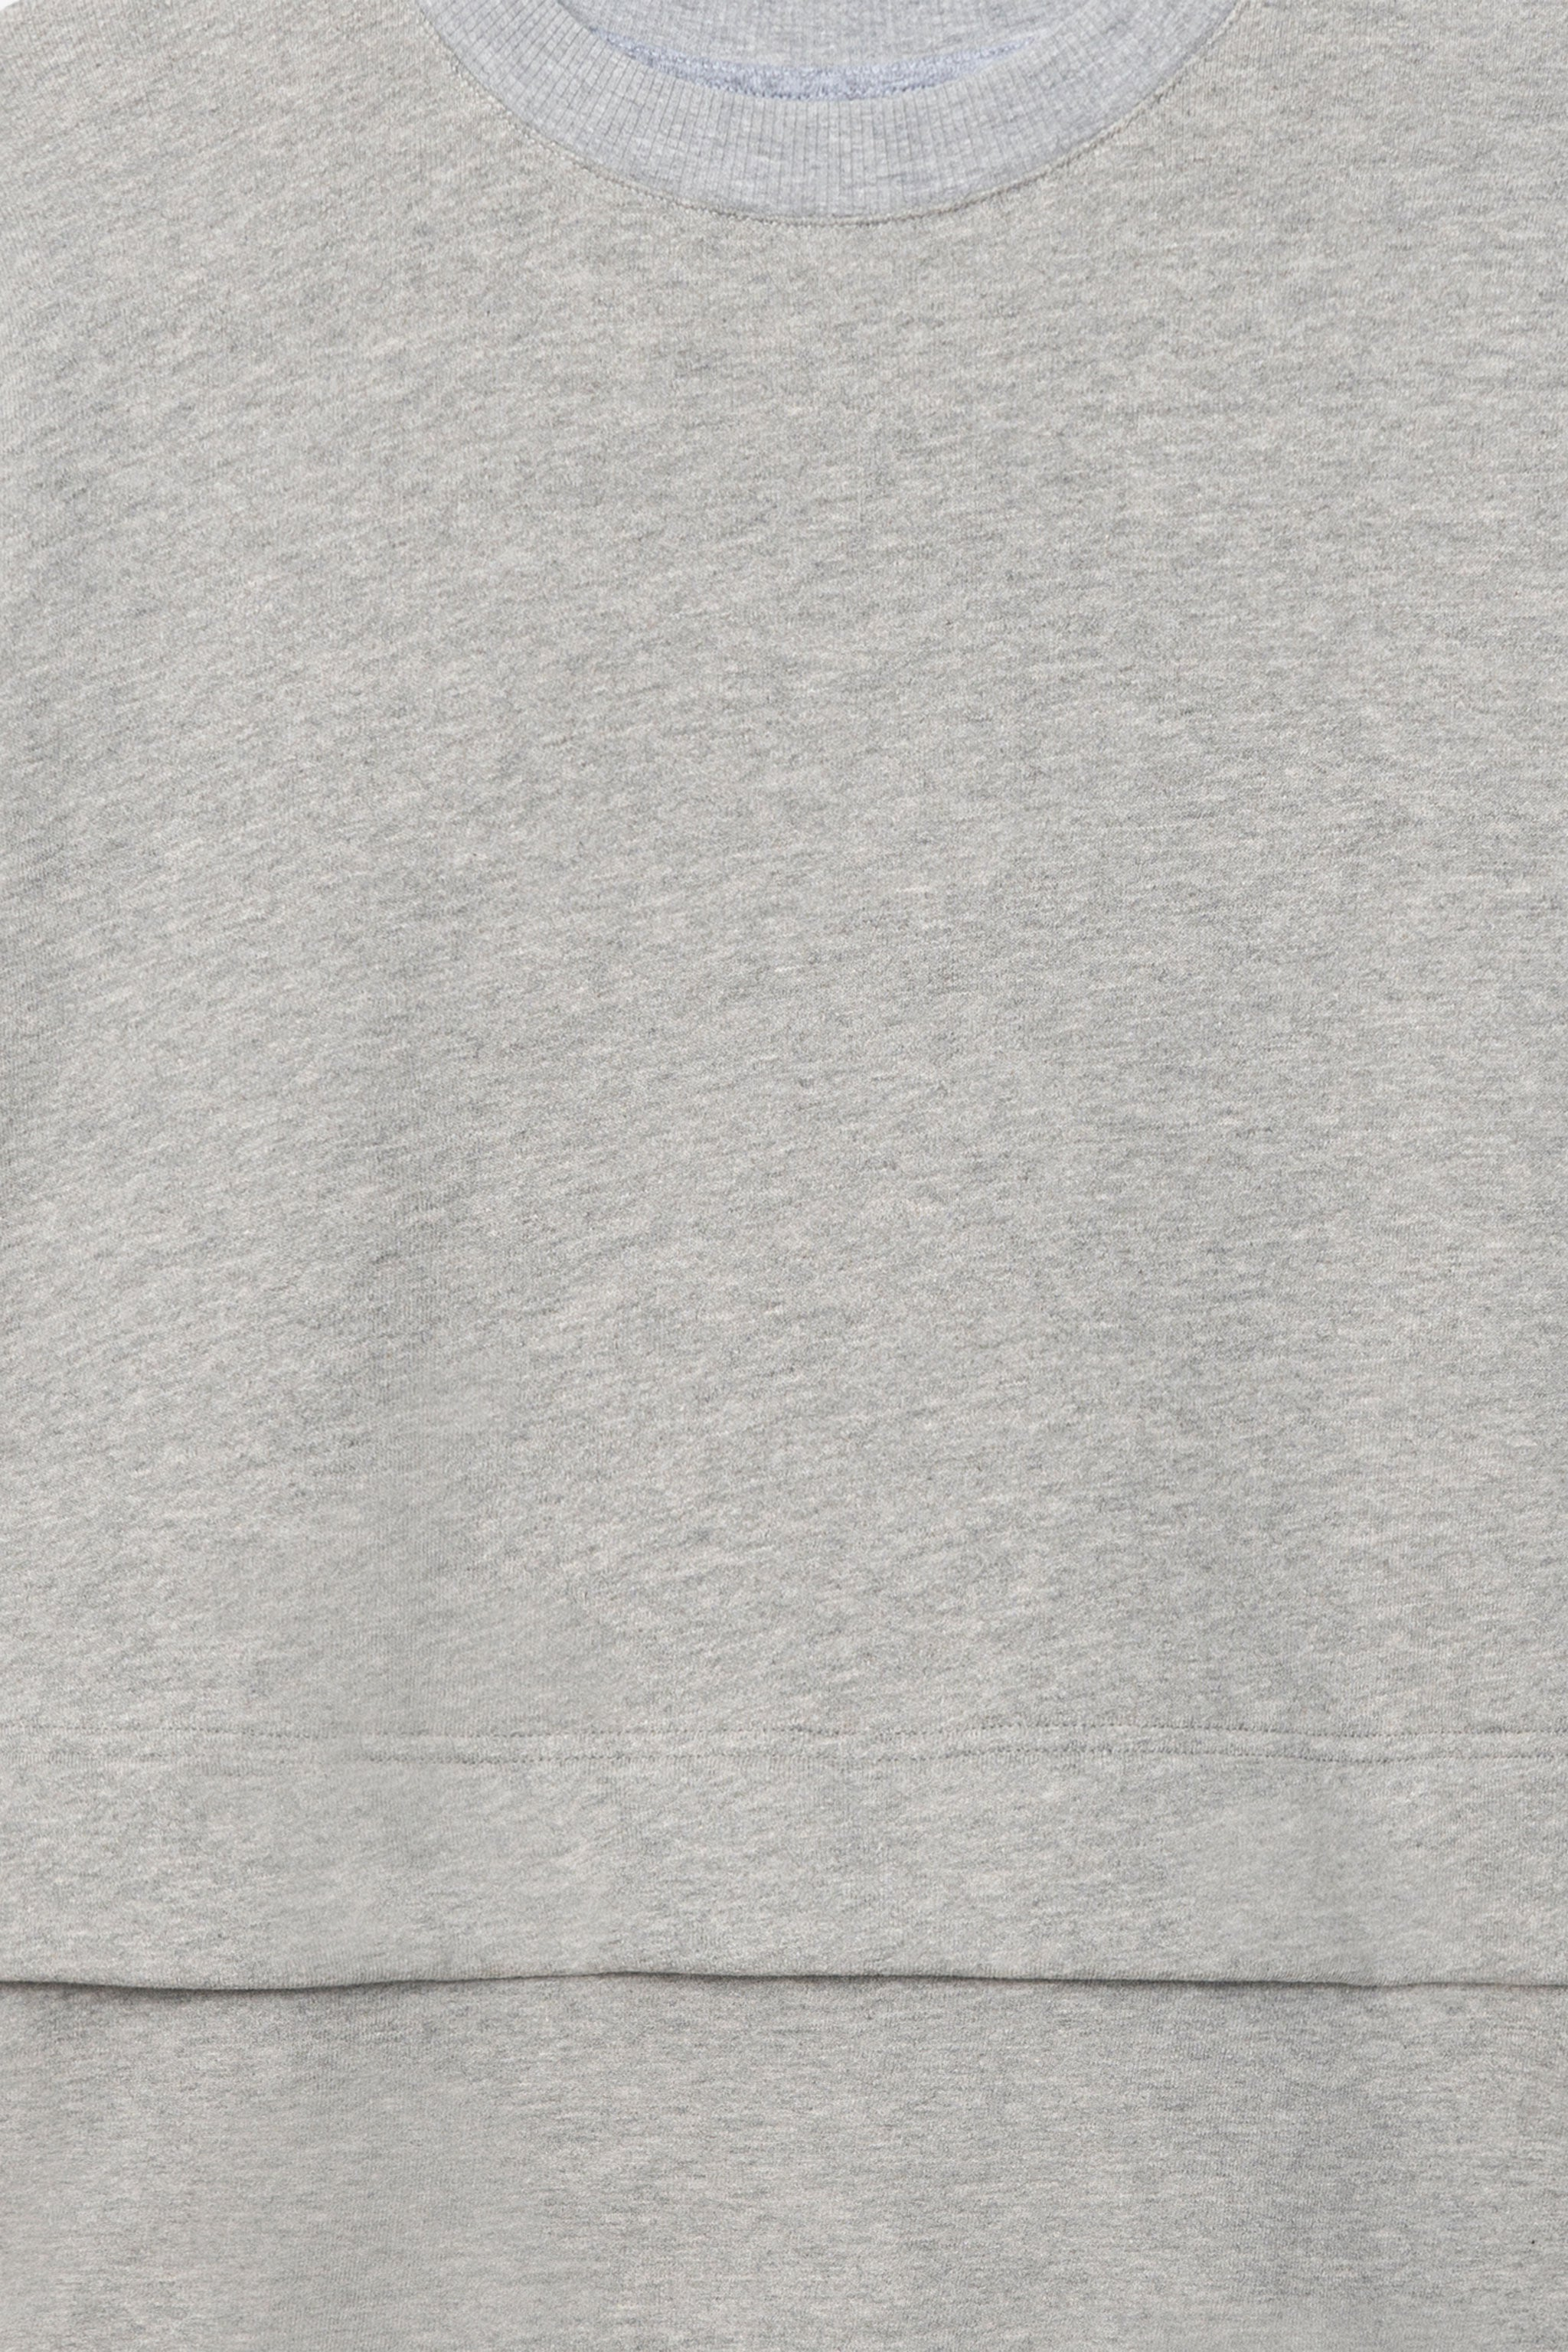 Goodfight Deja View Sweatshirt Heather Grey